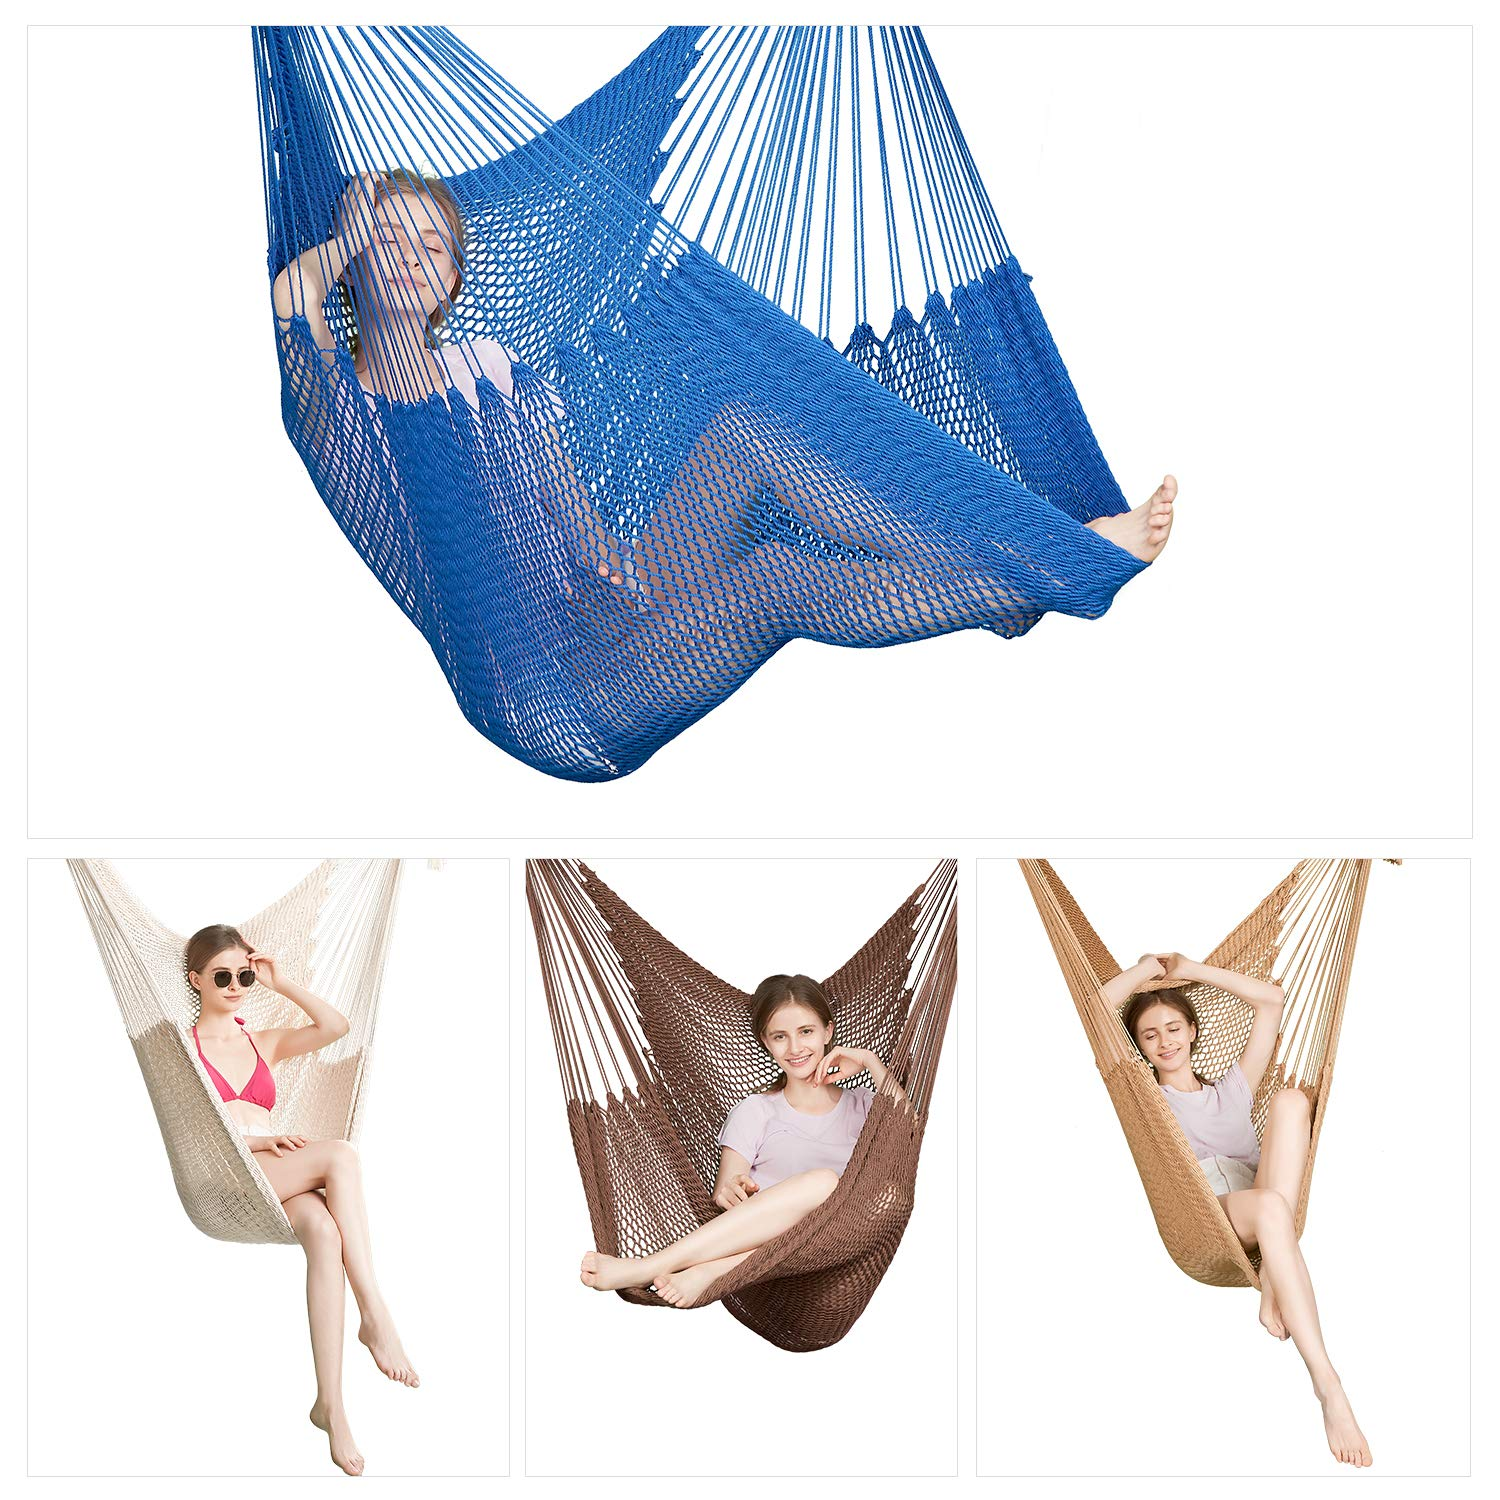 Greenstell Large Caribbean Hammock Hanging Chair with Hanging Kits and 150cm Strap,Swing Chair Comfortable Durable,100 Soft-Spun Polyester,for Indoor,Outdoor,Home,Patio,Yard,Garden 40 Inch Mocha